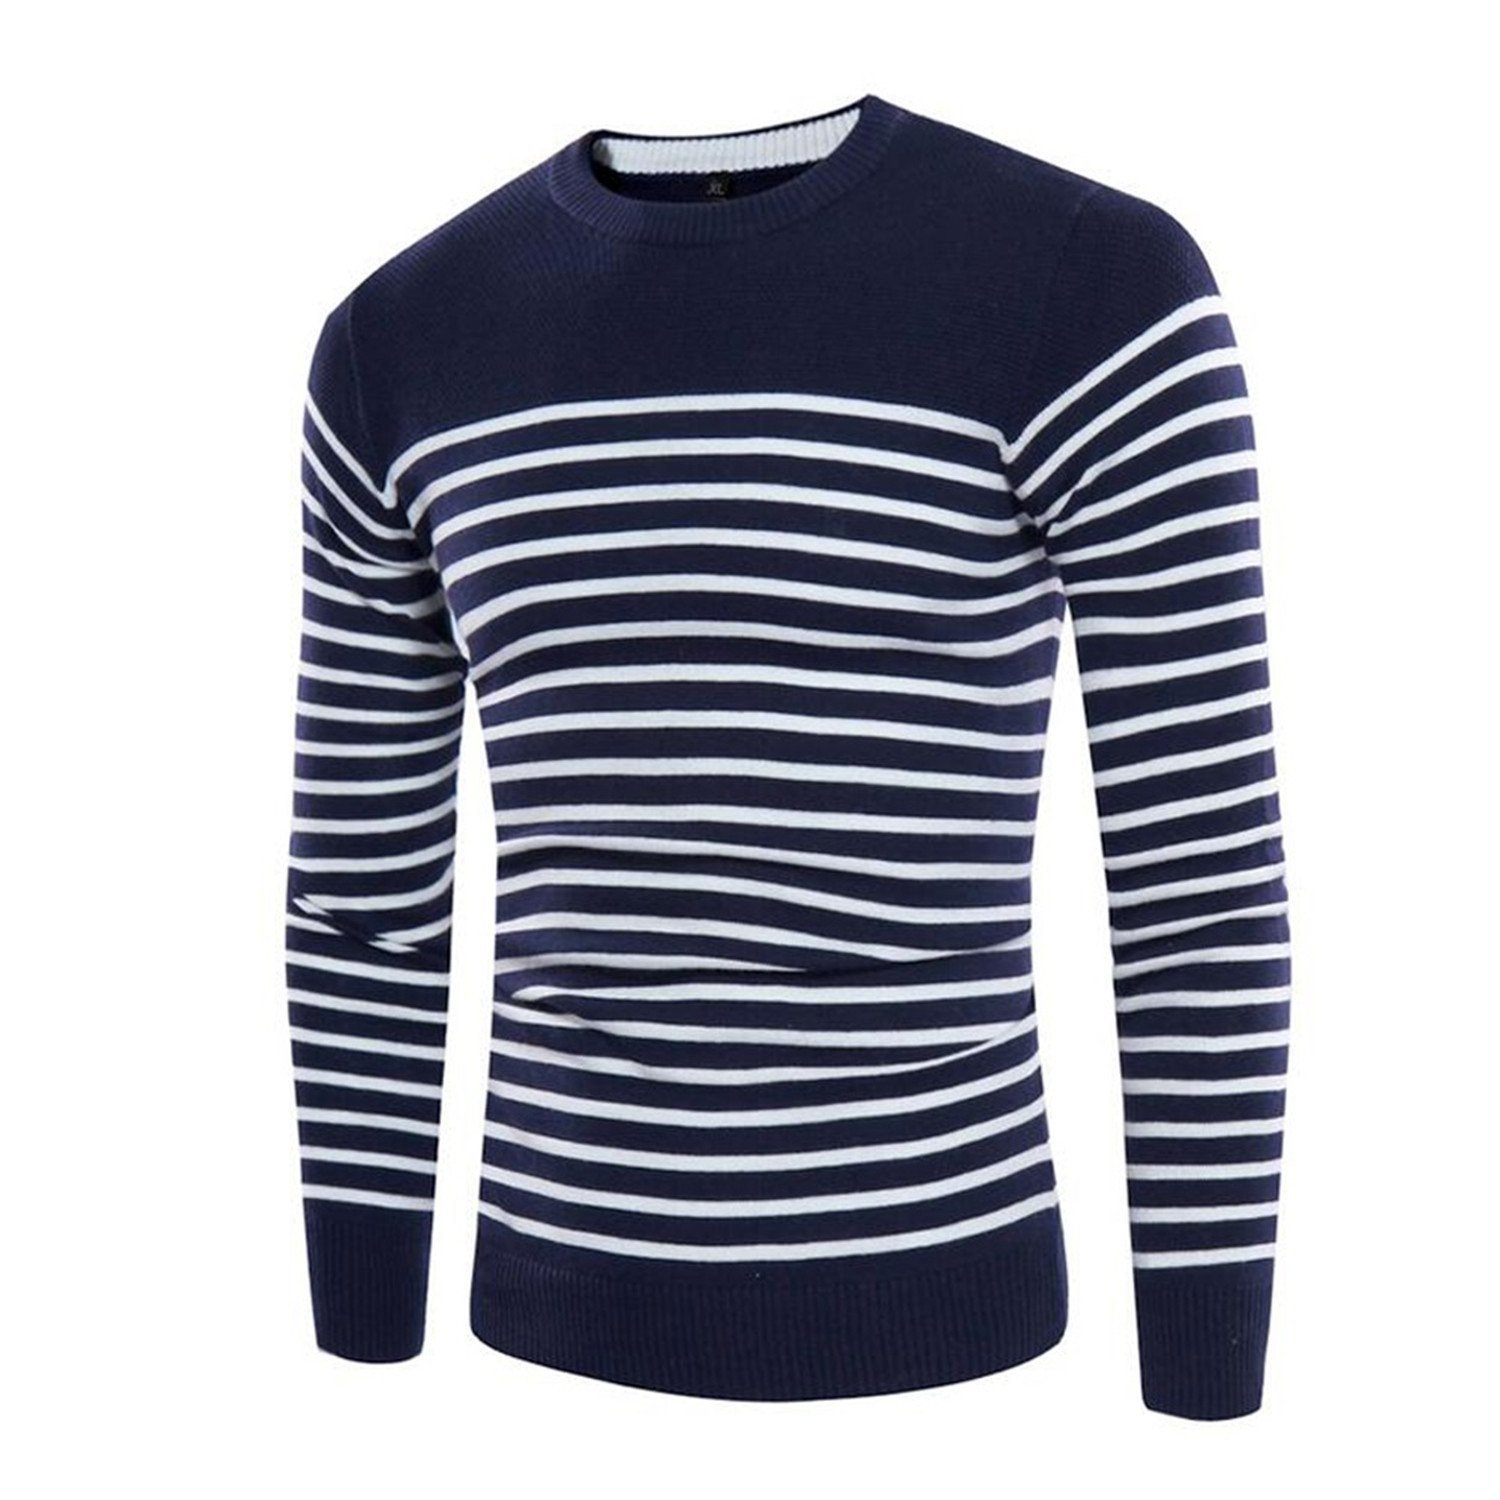 Cheryl Bull Trendy Knitted Sweaters O-Neck Jumper Men's Cotton Pullover Knitting White Black Navy Grey Striped Sweater Wine RedX-Large